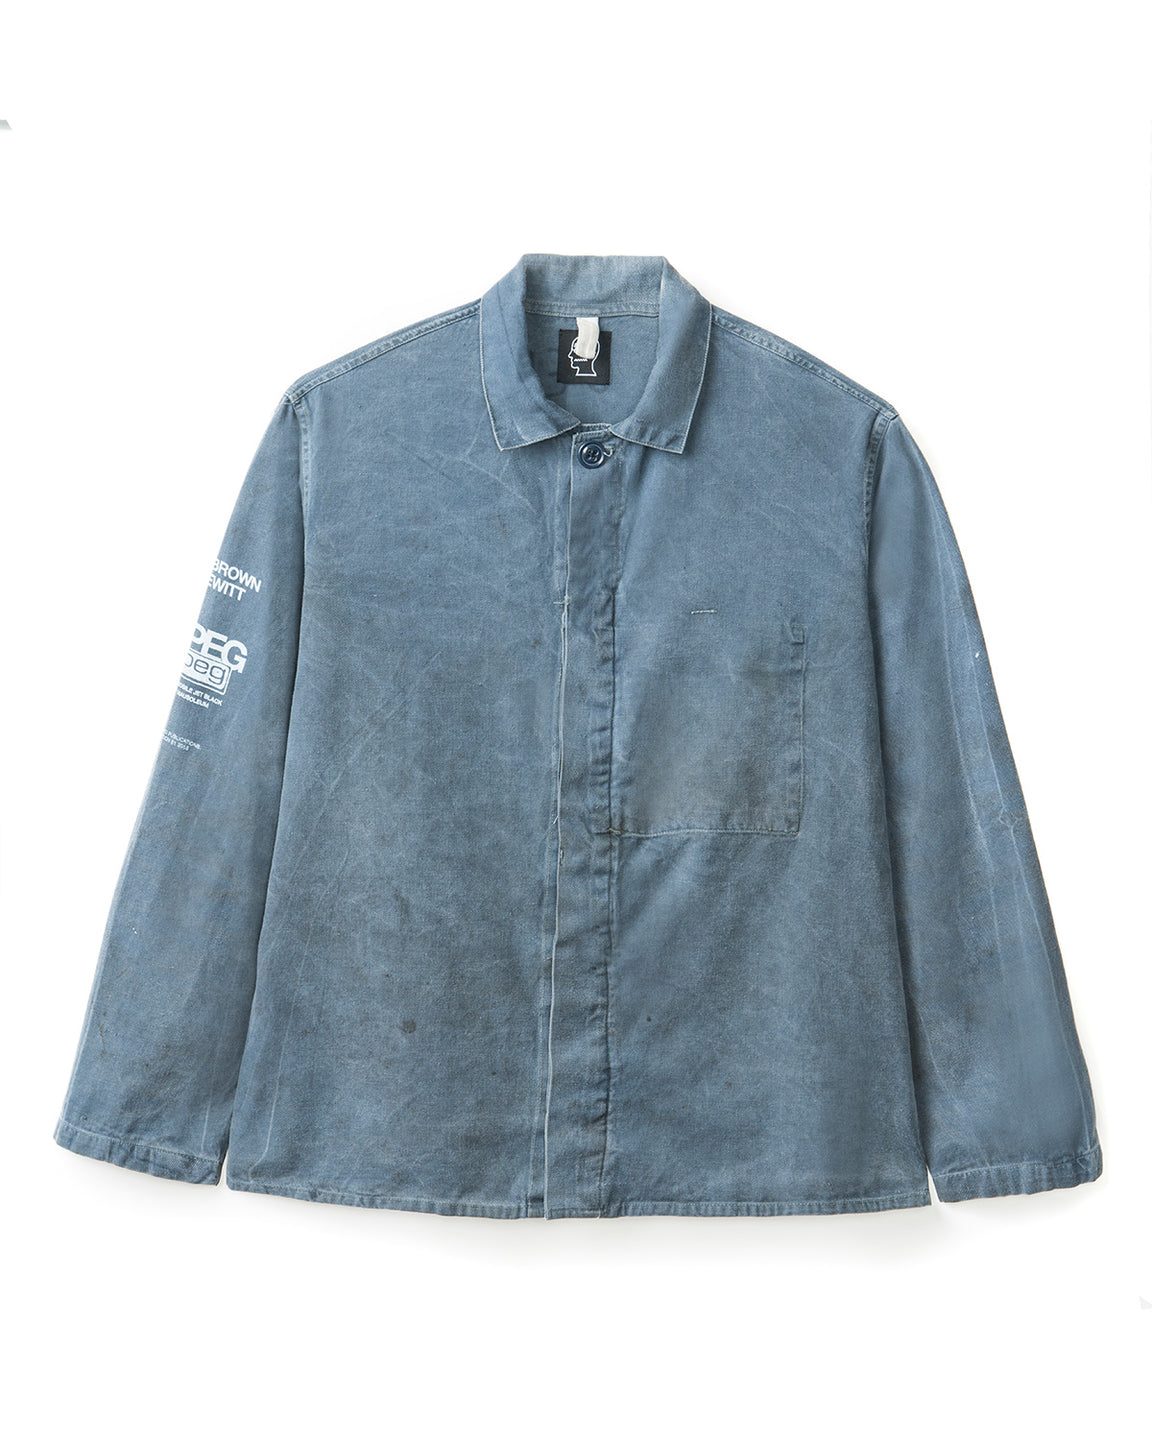 Frieze Vintage Chore Coat - 2/60